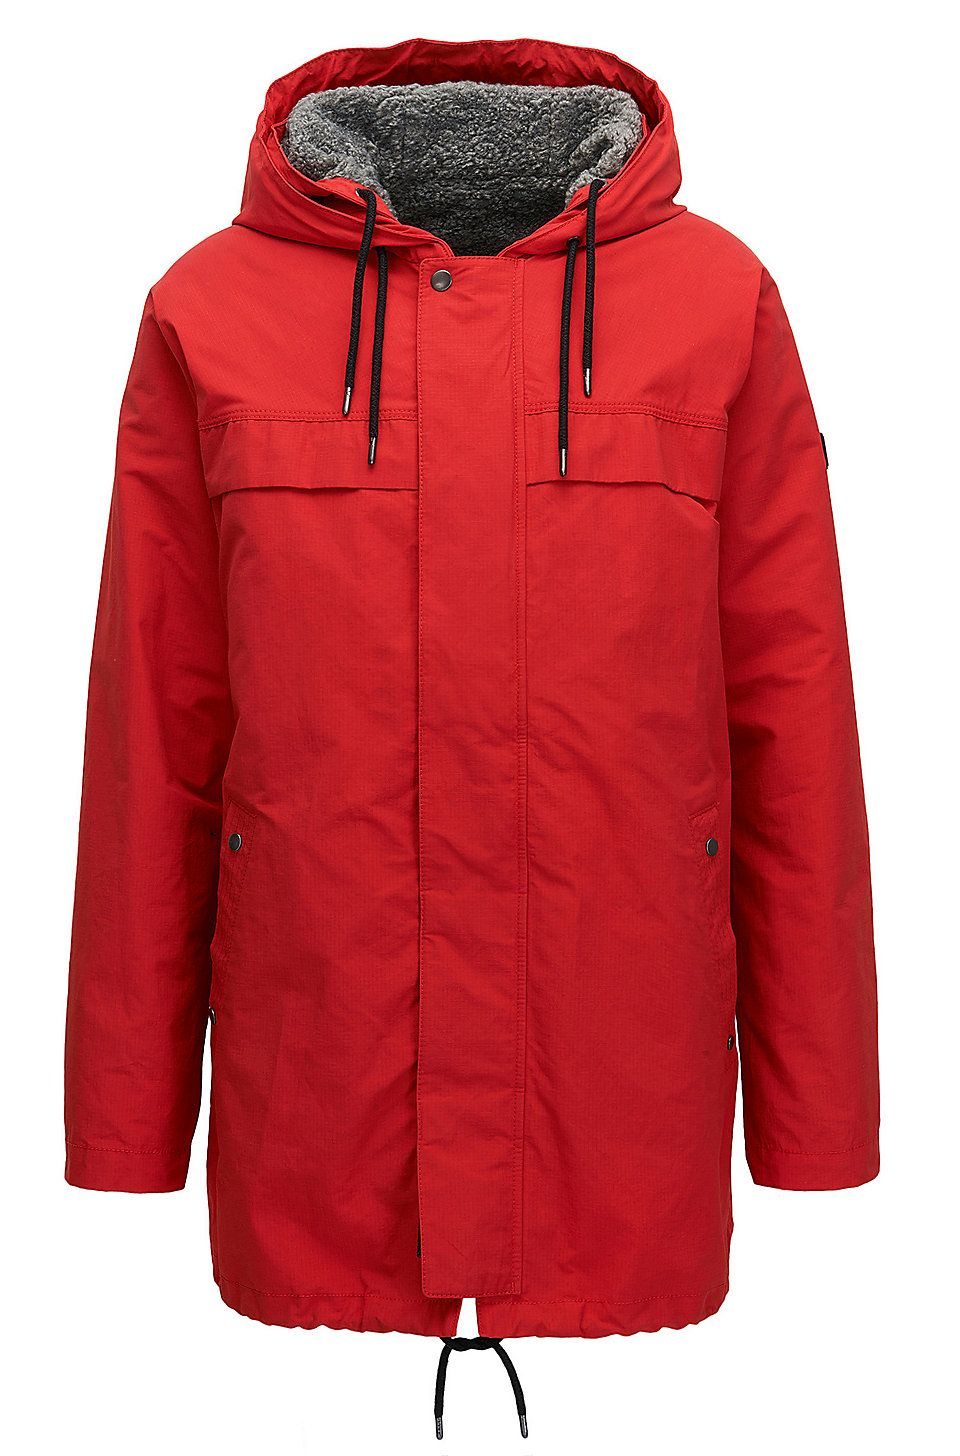 Hugo Boss Relaxed Fit Jacket In A Technical Cotton Blend Red Parkas From Boss For Men In The Official Hugo Boss Online Store Workout Jacket Jackets Hugo Boss [ 1456 x 960 Pixel ]